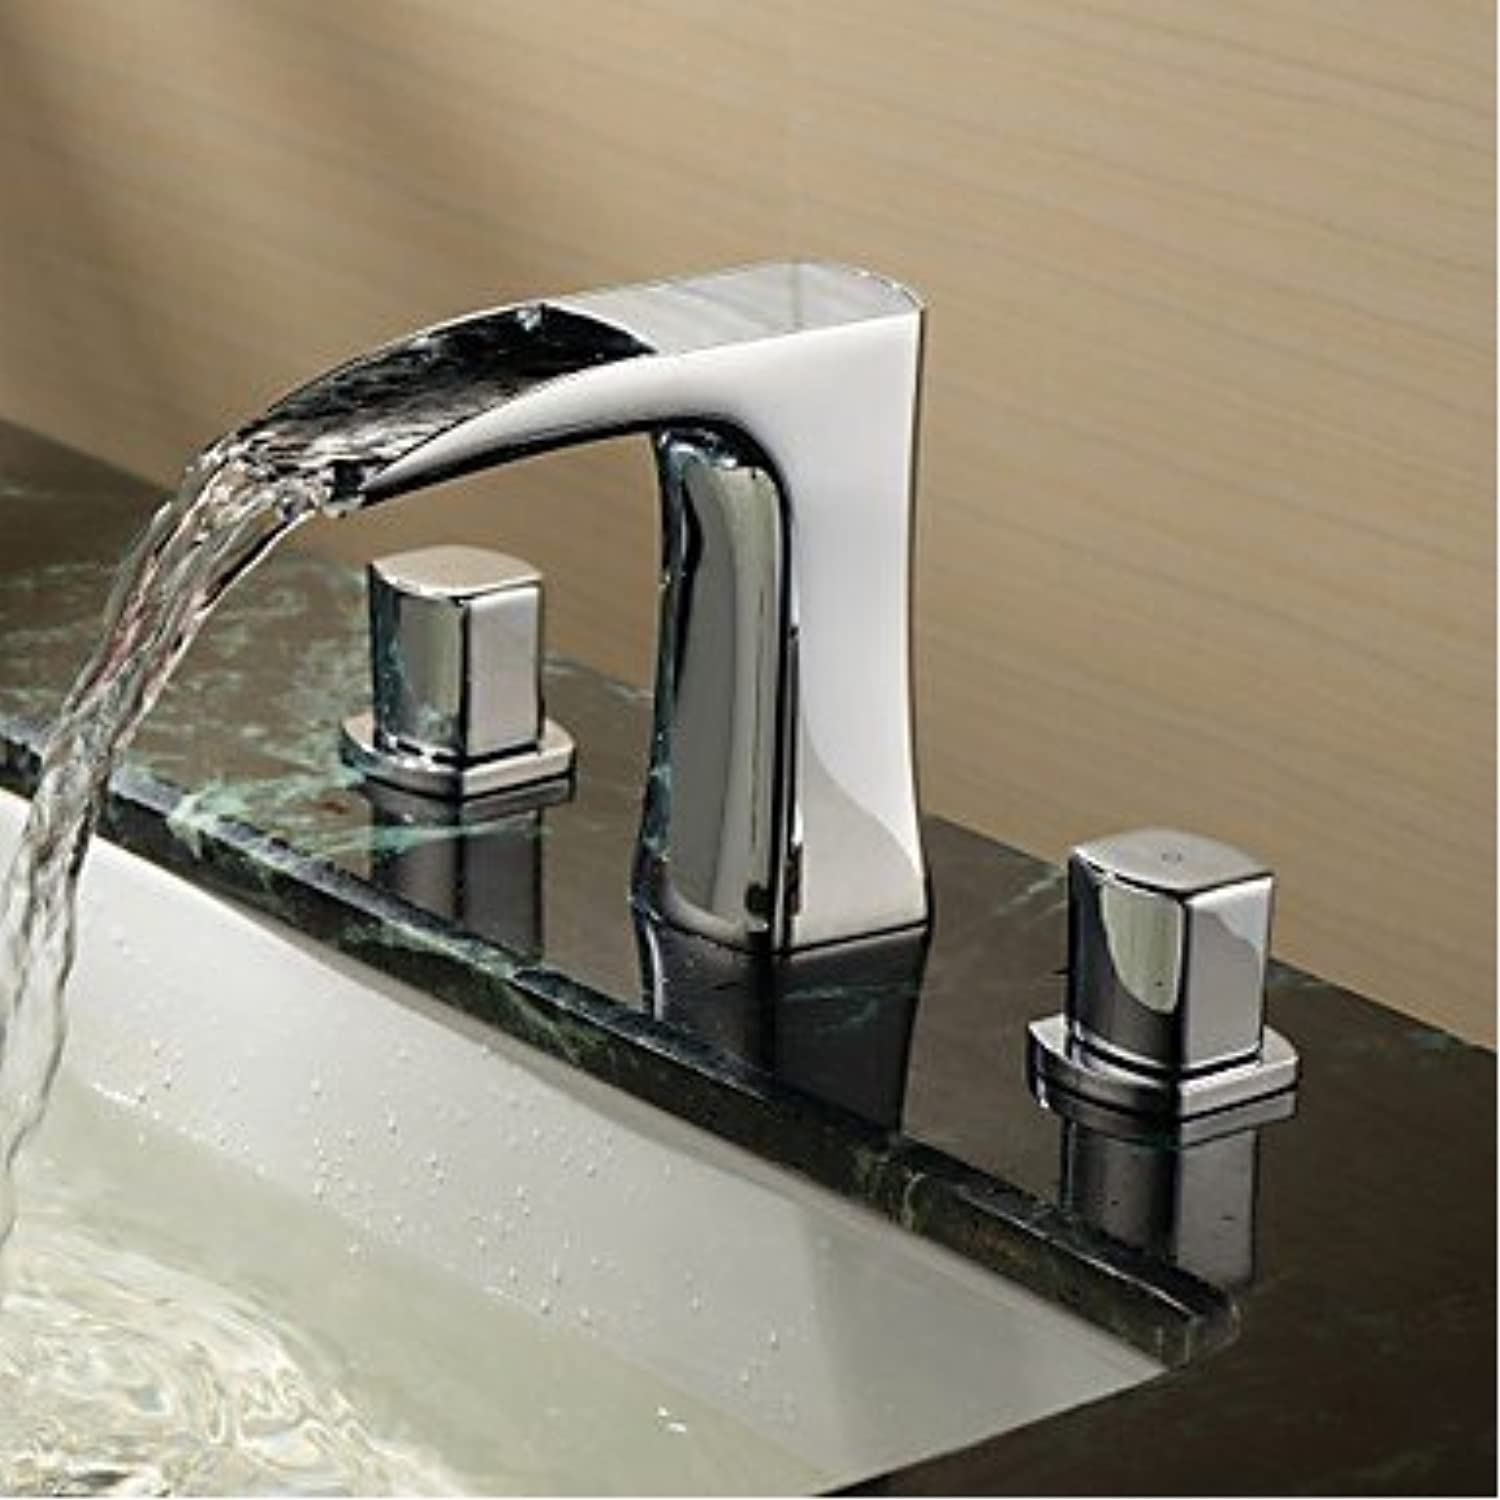 U-Enjoy Brass Sink Waterfall Top Quality Bathroom Faucet Handles Hot & Cold Mixer Water Tap Deck Mounted Chrome para (Free Shipping)